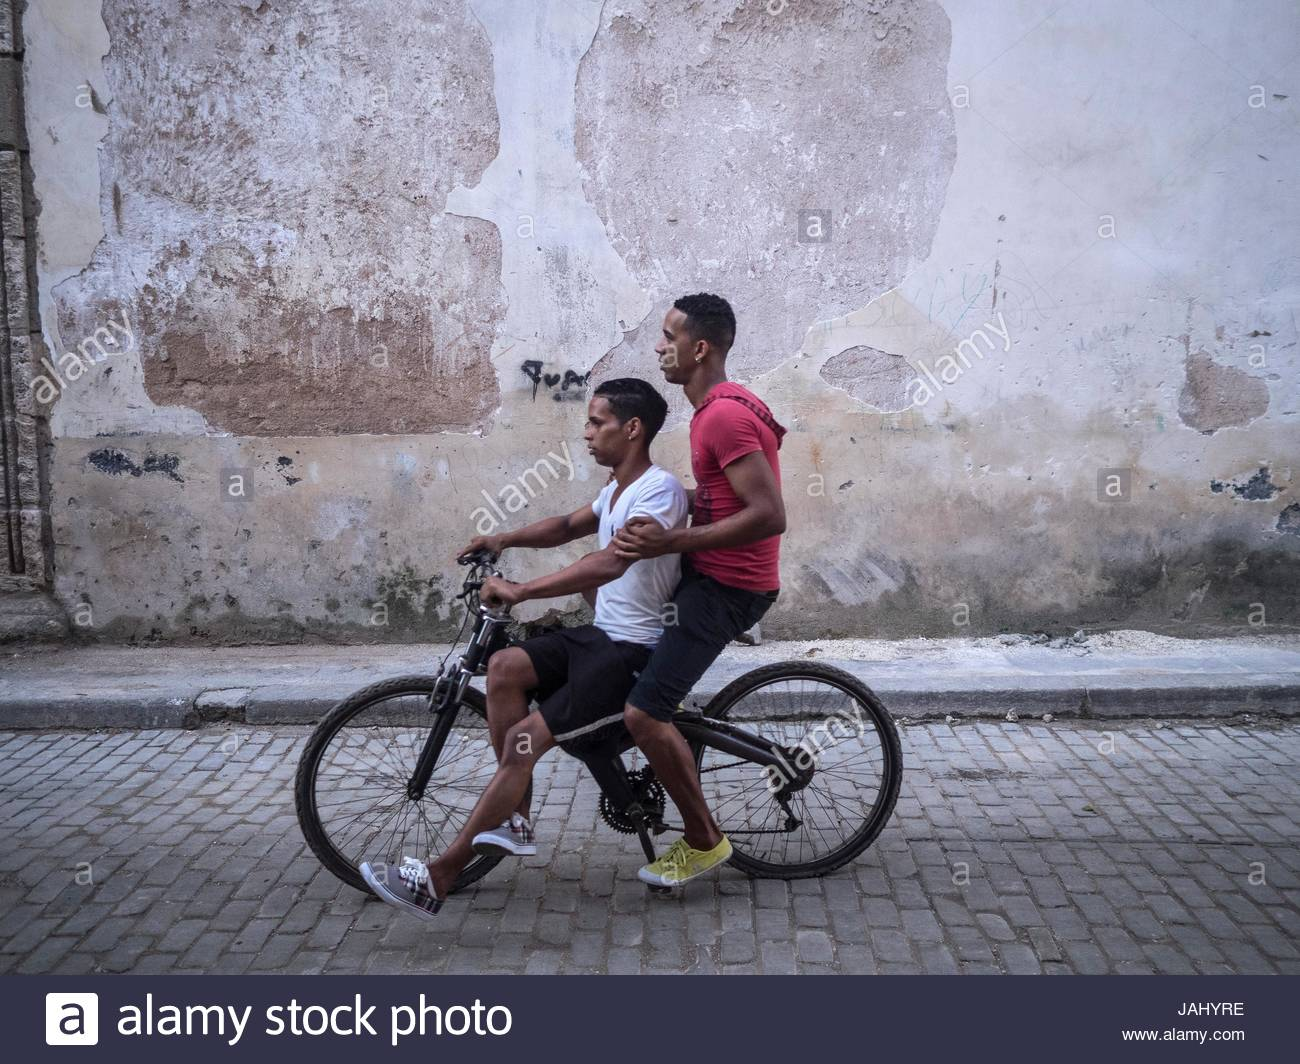 Young men double up on a bicycle in Calle Teniente Rey. - Stock Image